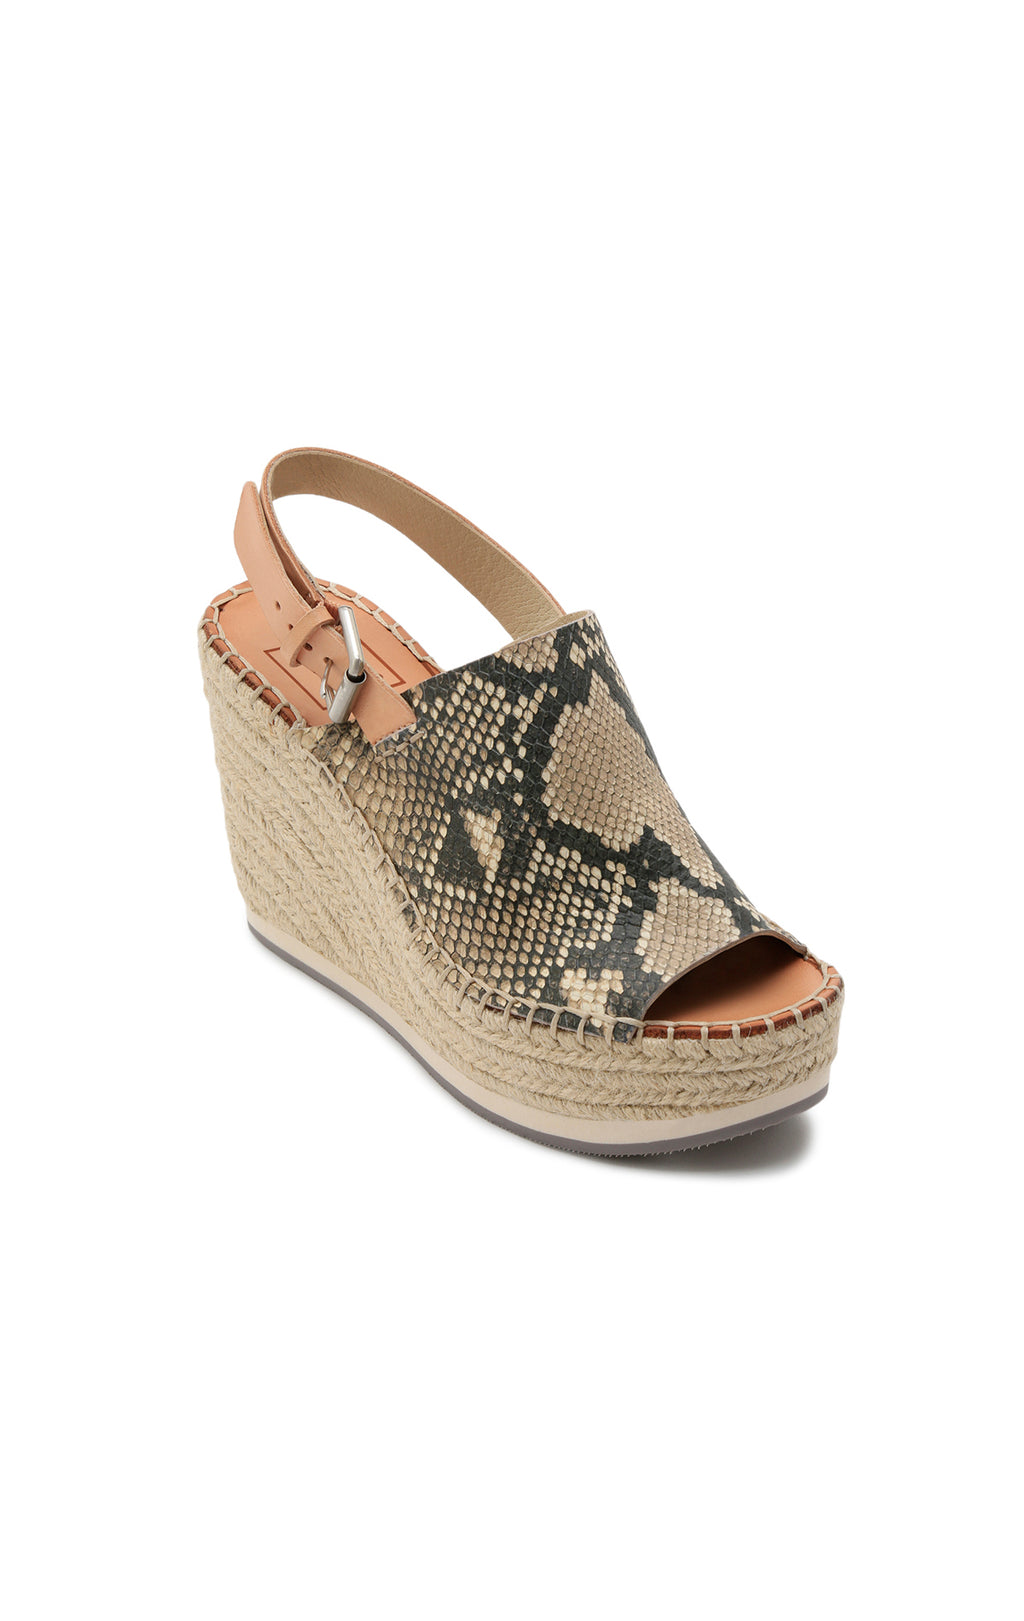 DOLCE VITA SHAN SNAKE WEDGES - SHOES